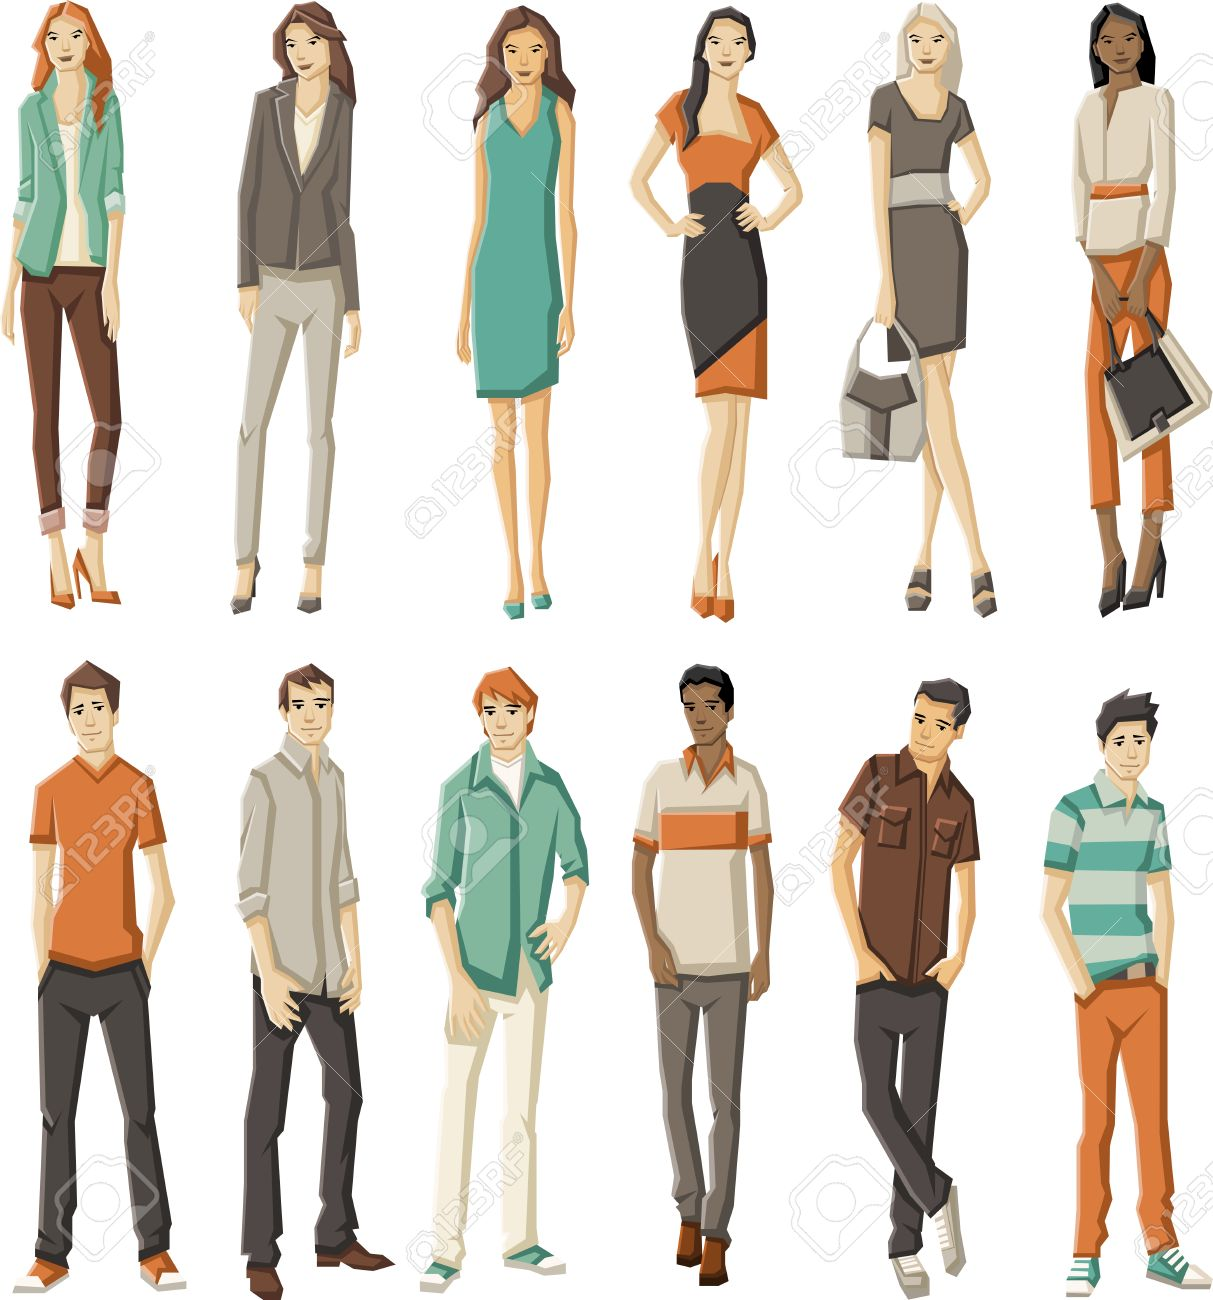 Group of fashion cartoon young people - 33211258